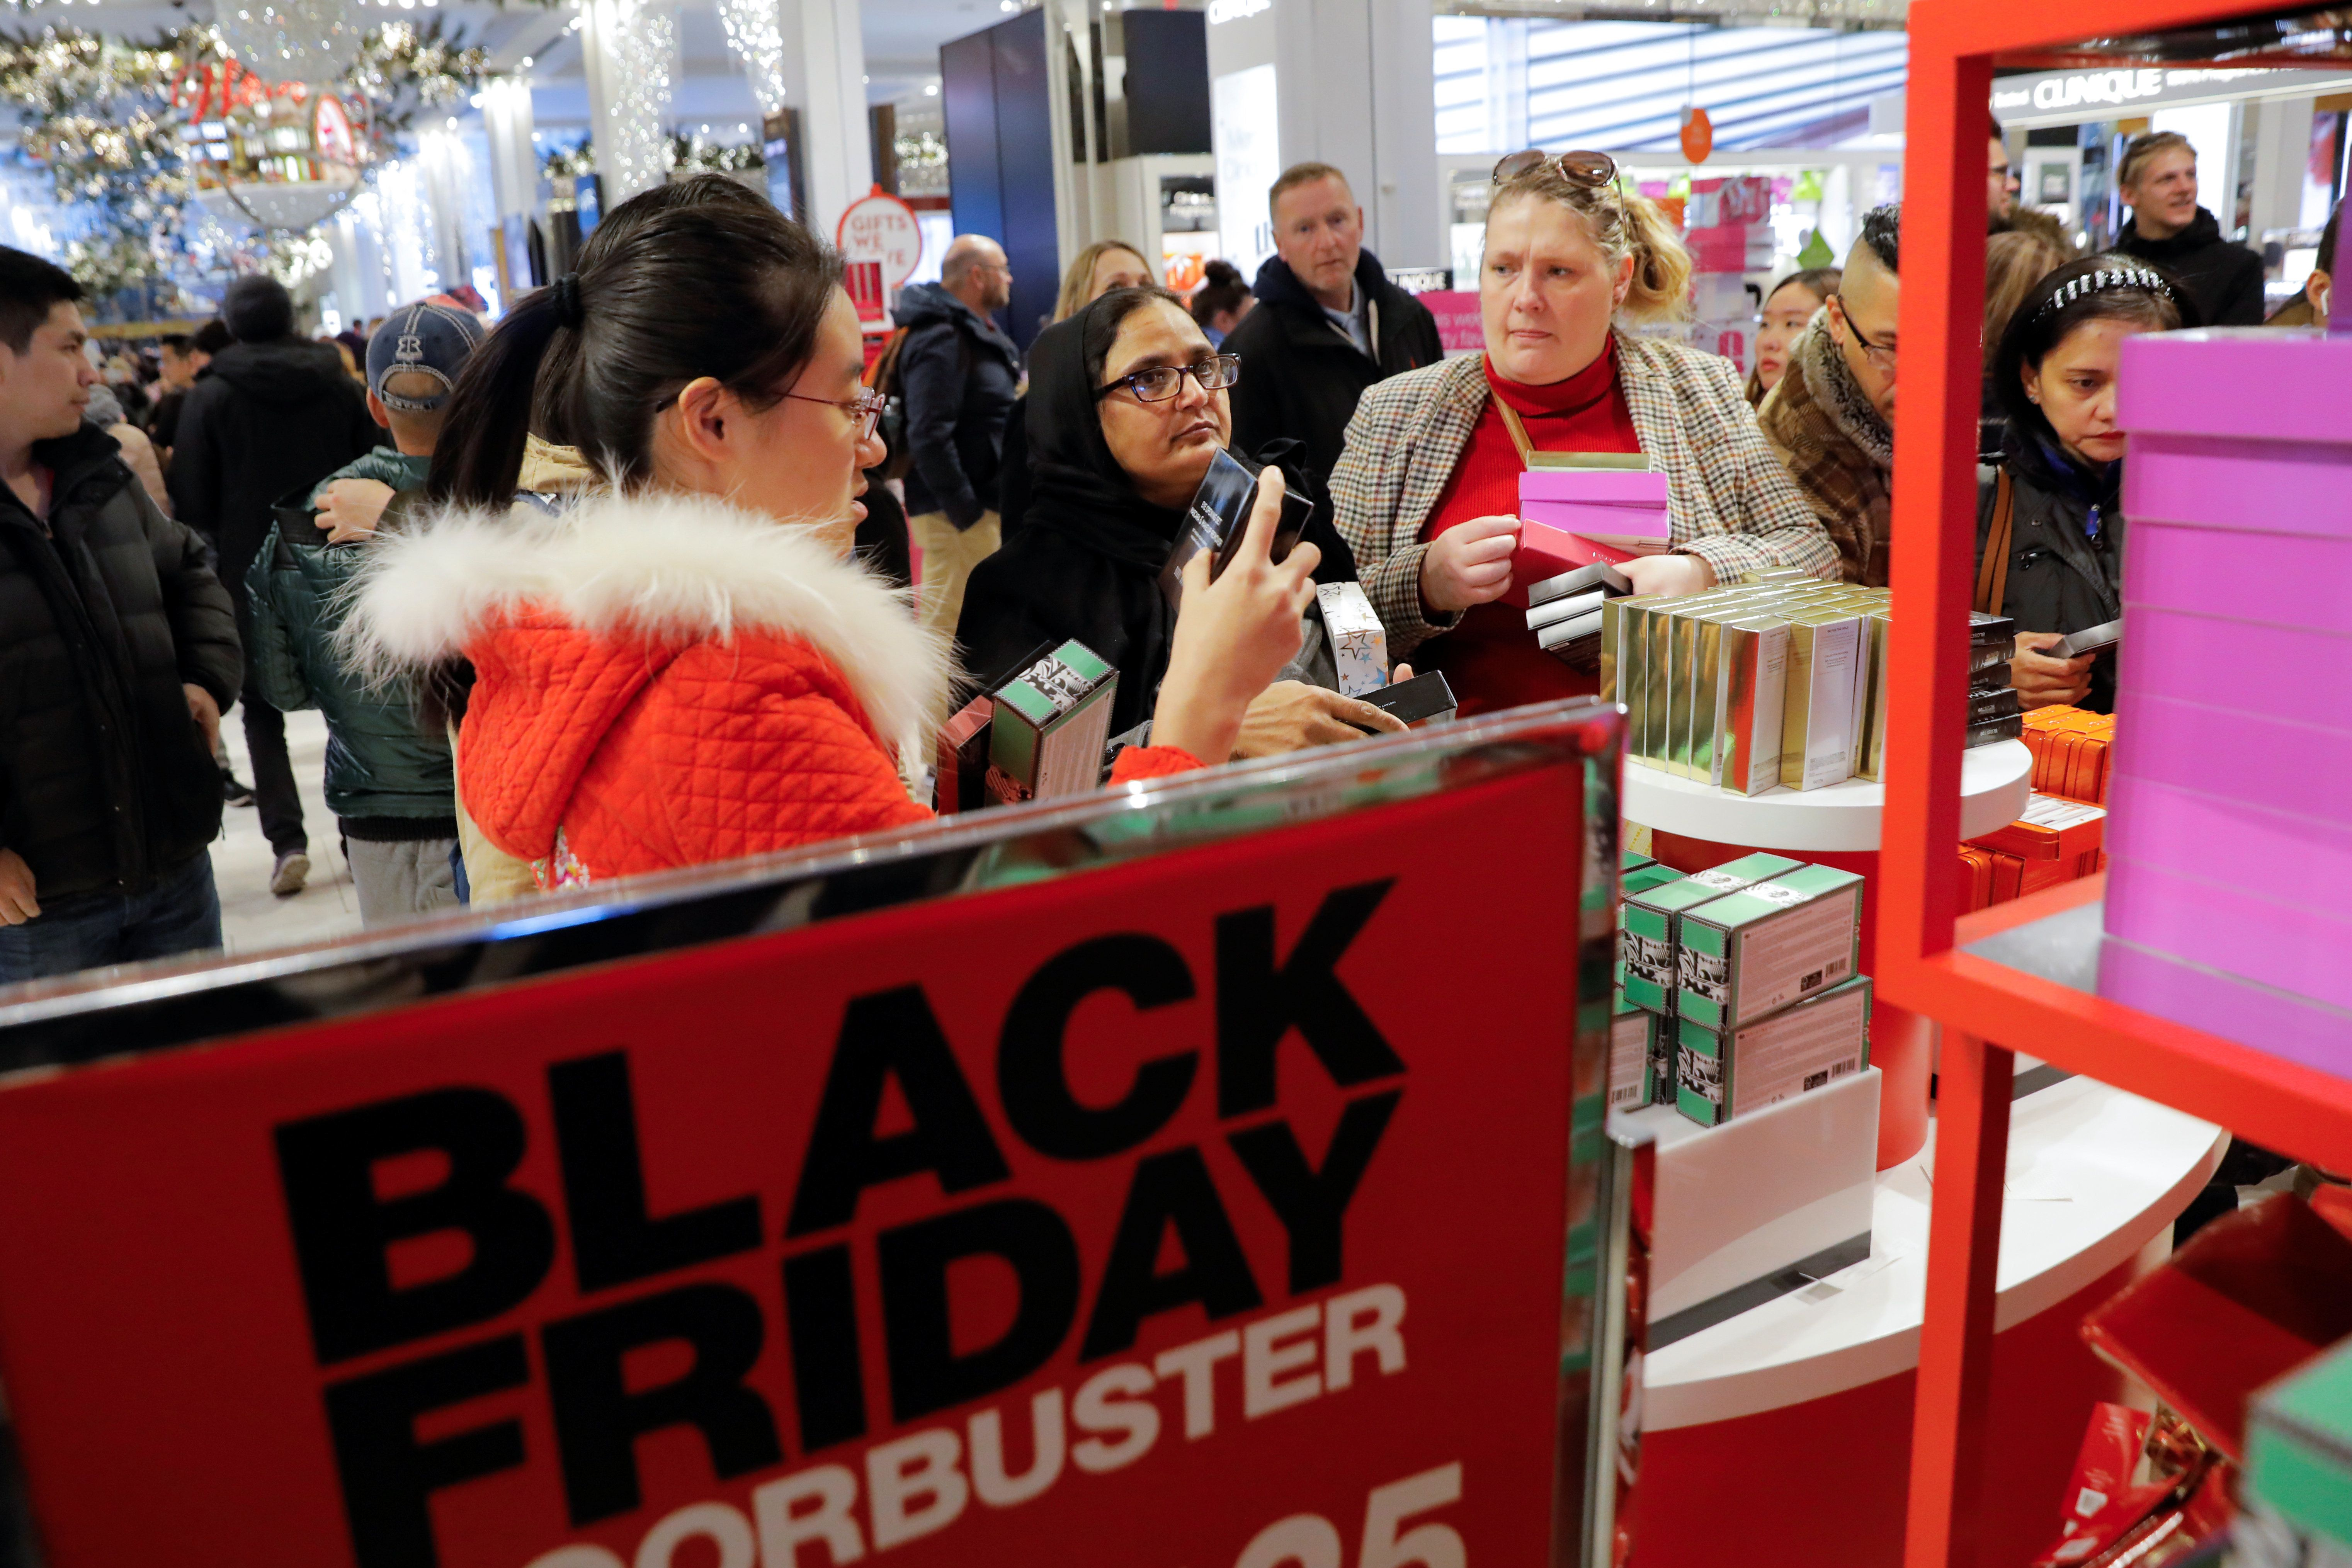 People shop for items in Macy's Herald Square during early opening for the Black Friday sales in Manhattan, New York, U.S., November 23, 2017.  REUTERS/Andrew Kelly